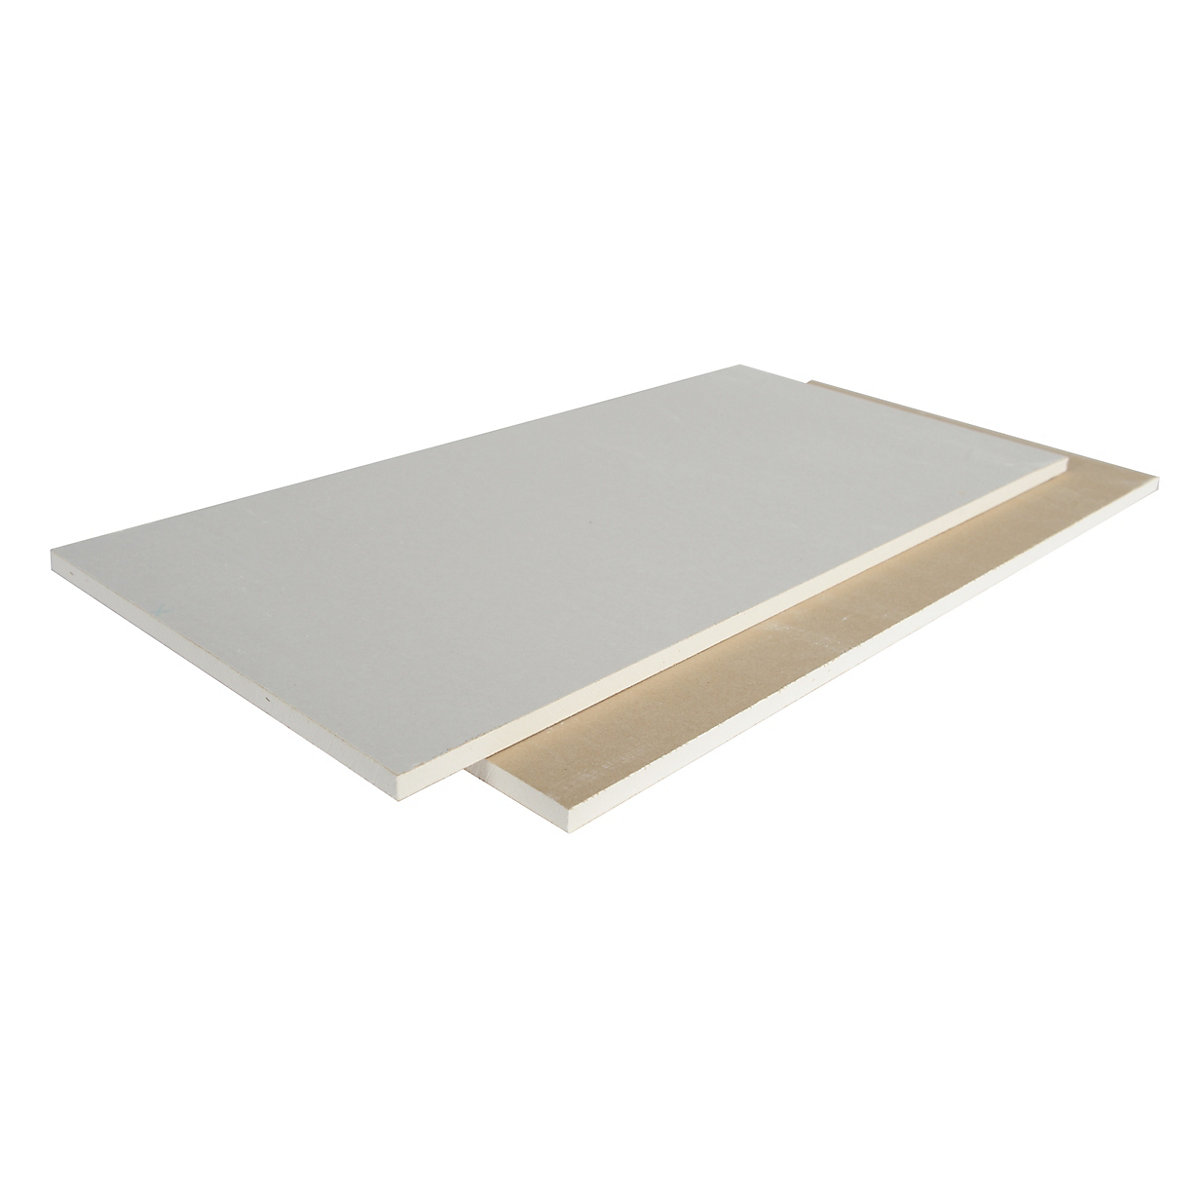 Standard Plasterboard Sheets Buy Circuit Boardsell Boardsuppliers Boardcircuit British Gypsum Gyproc Square Edge 2400mm X 1200mm 15mm